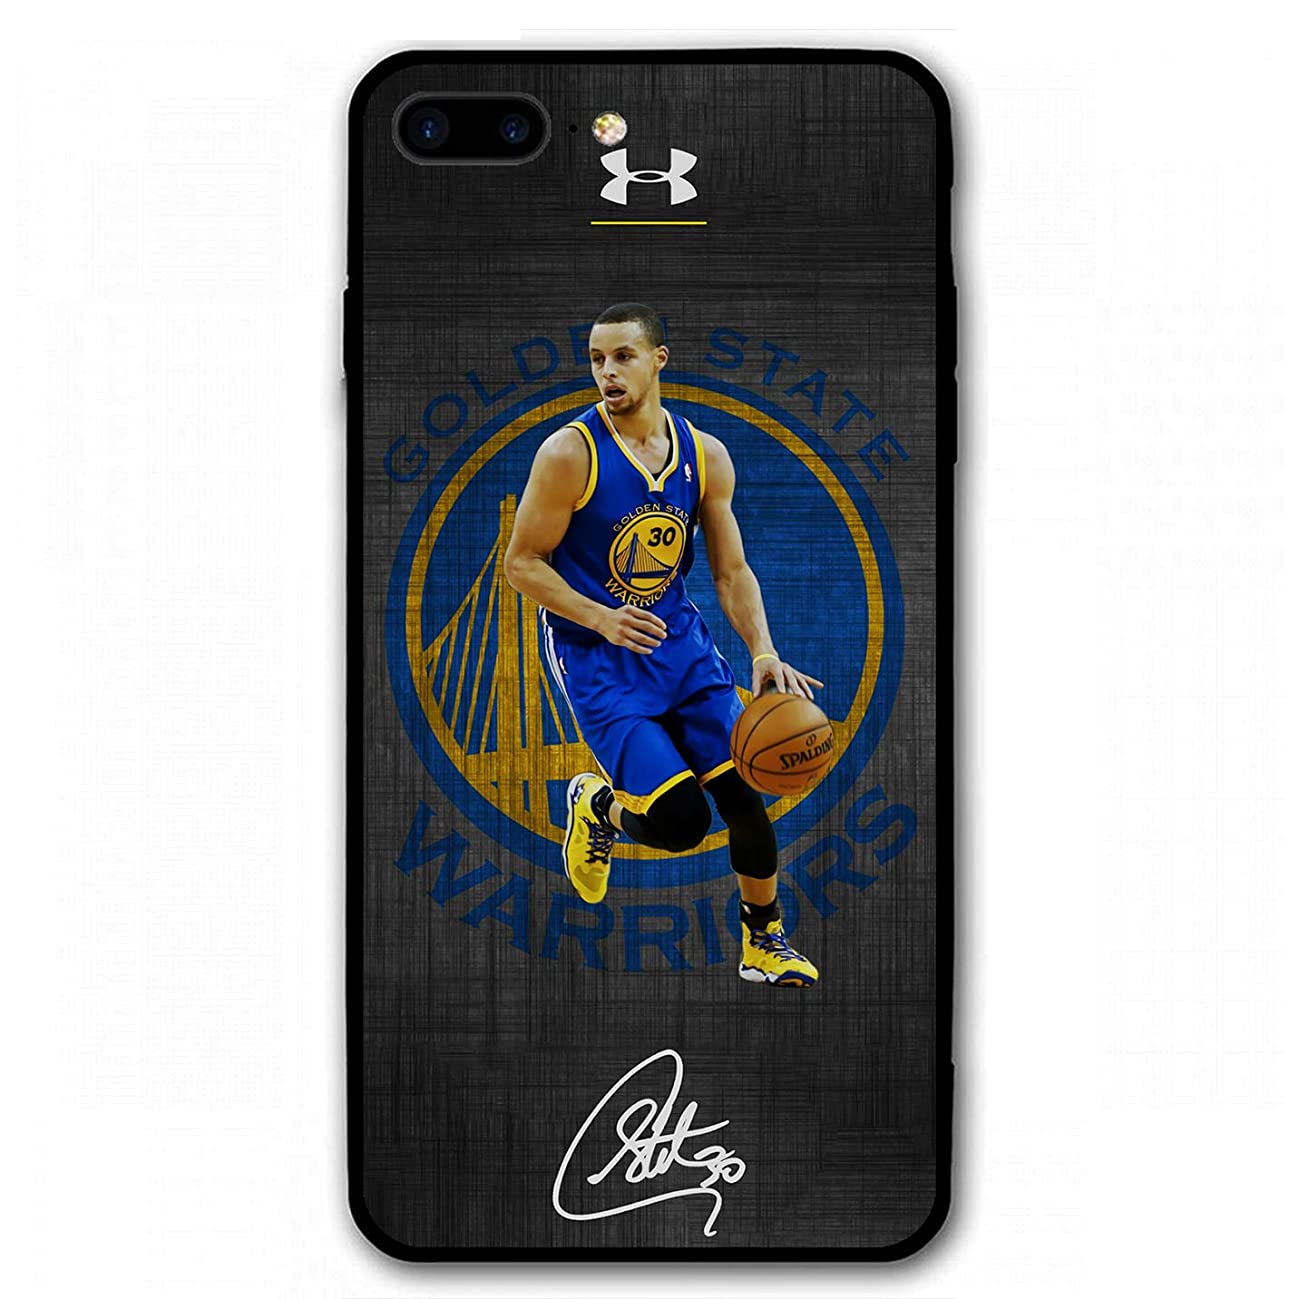 iPhone 6/6s Case Golden State Curry Sign Custom Anti-Scratch Slim Cover Case Fashion Design (for iPhone 6/6s)